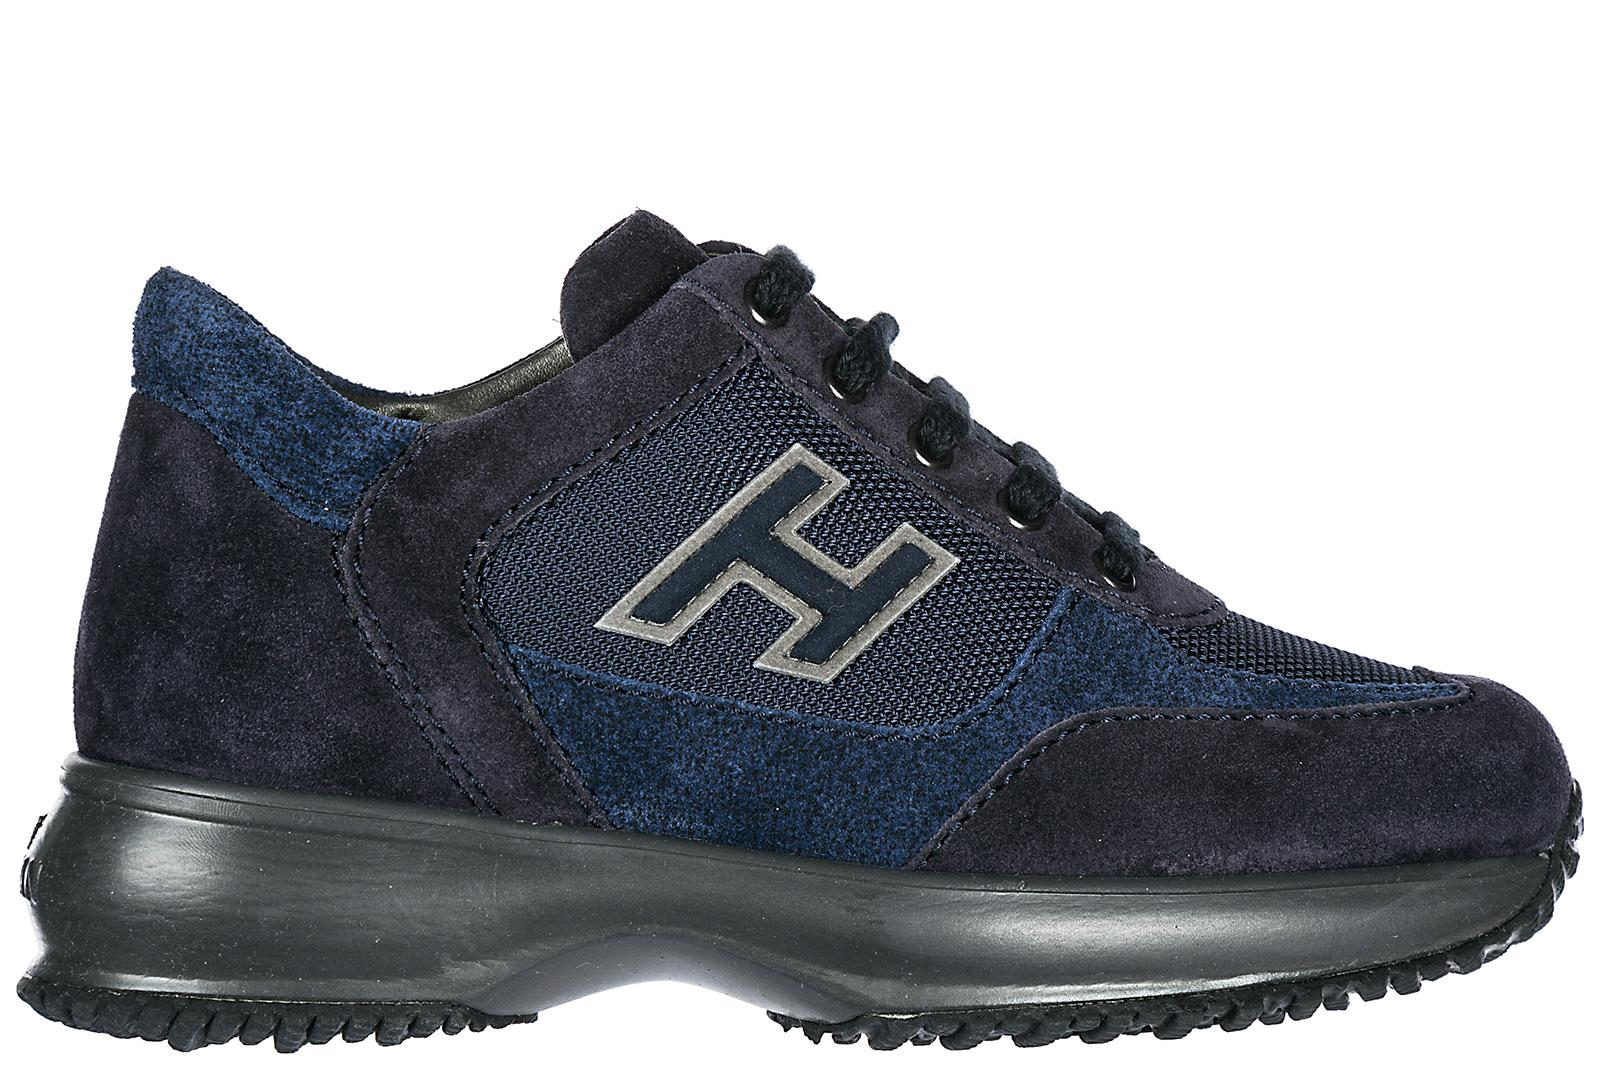 5924e7000b7bc Hogan Boys Shoes Child Sneakers Suede Leather Interactive H Flock In Blue